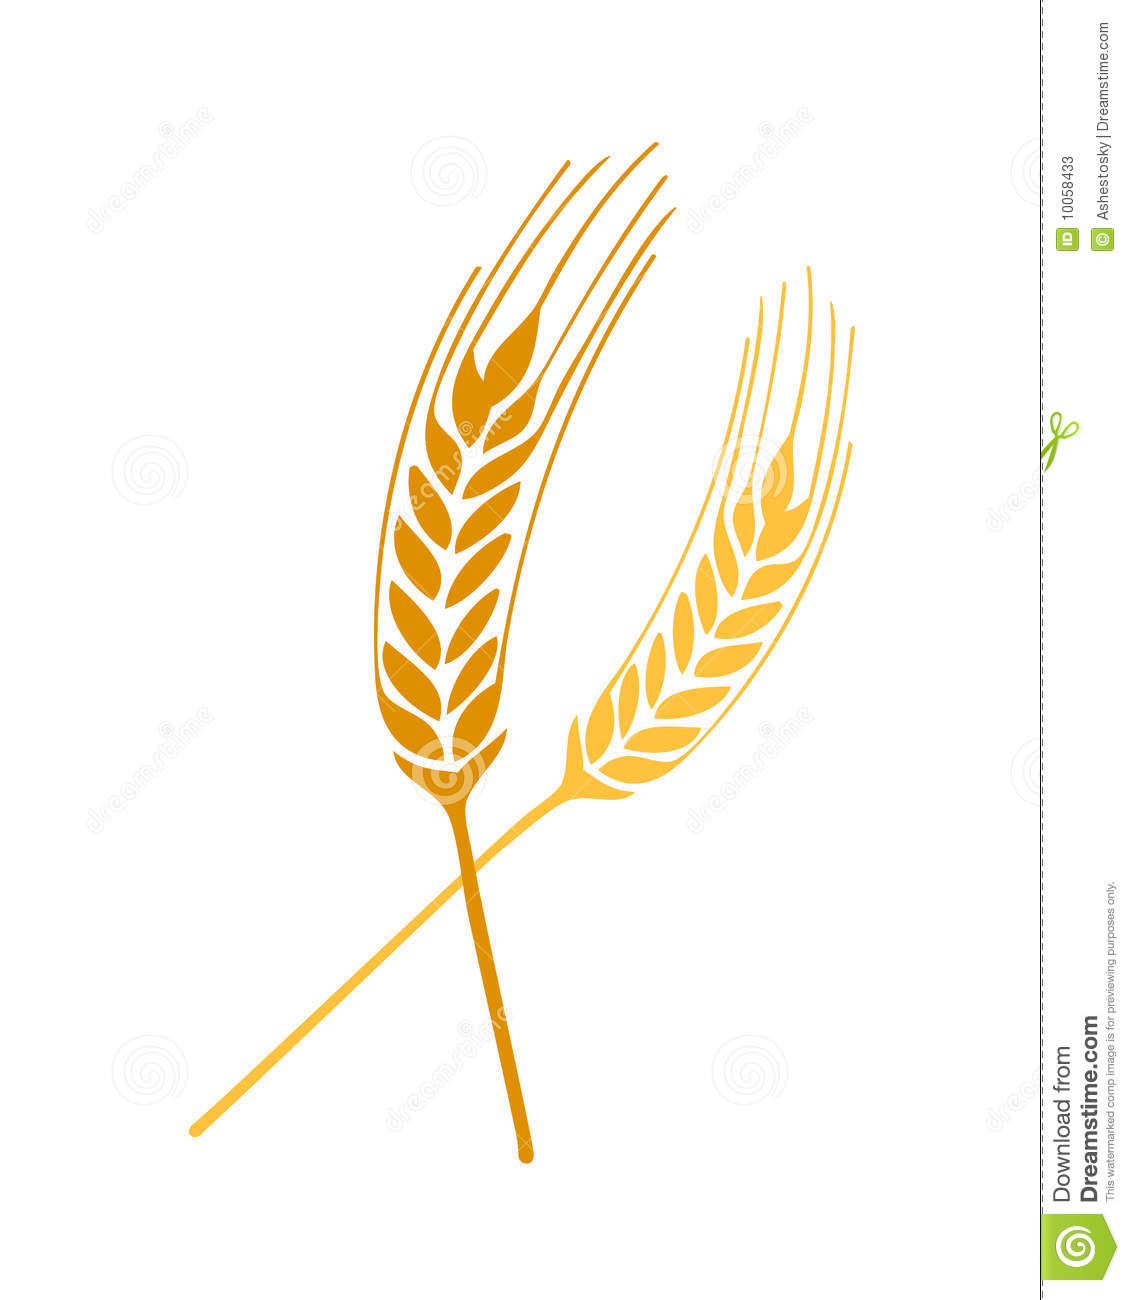 Wheat Springs Vector Stock Photos - Image: 10058433